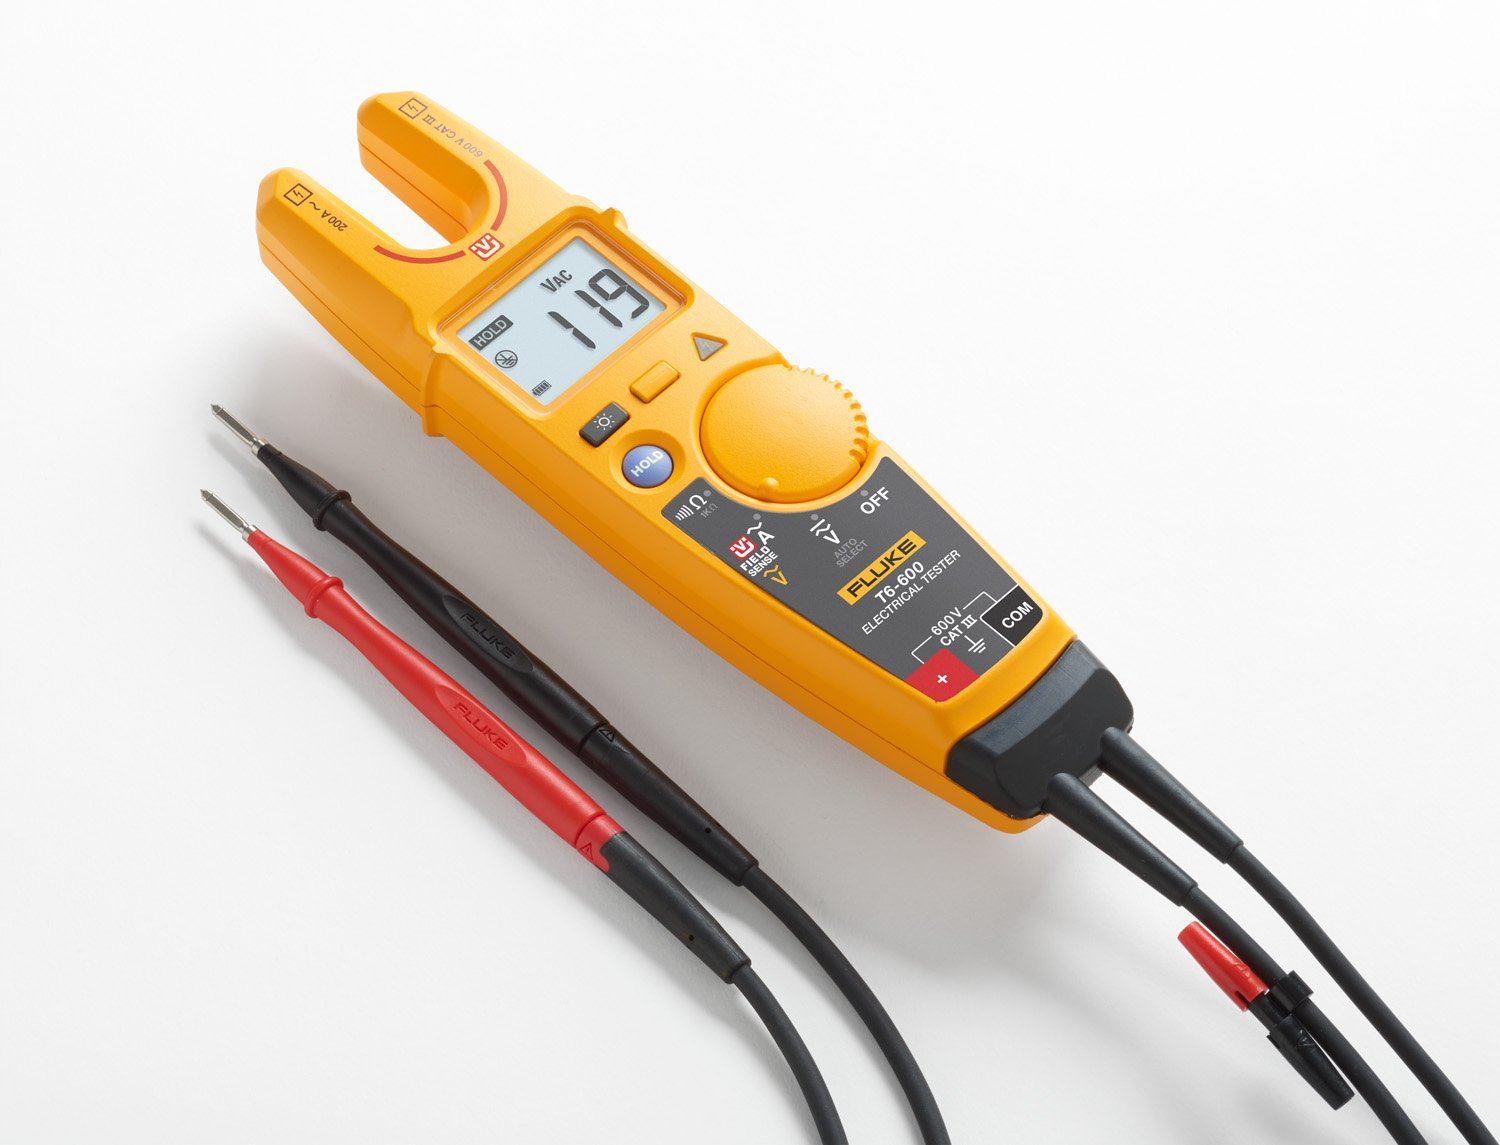 Fluke T6 Sound Smizona Open Circuit Using A 2ac Noncontact Voltage Detector Youtube 4910331 600 Electrical Tester With Field Sense Technology Amazoncom